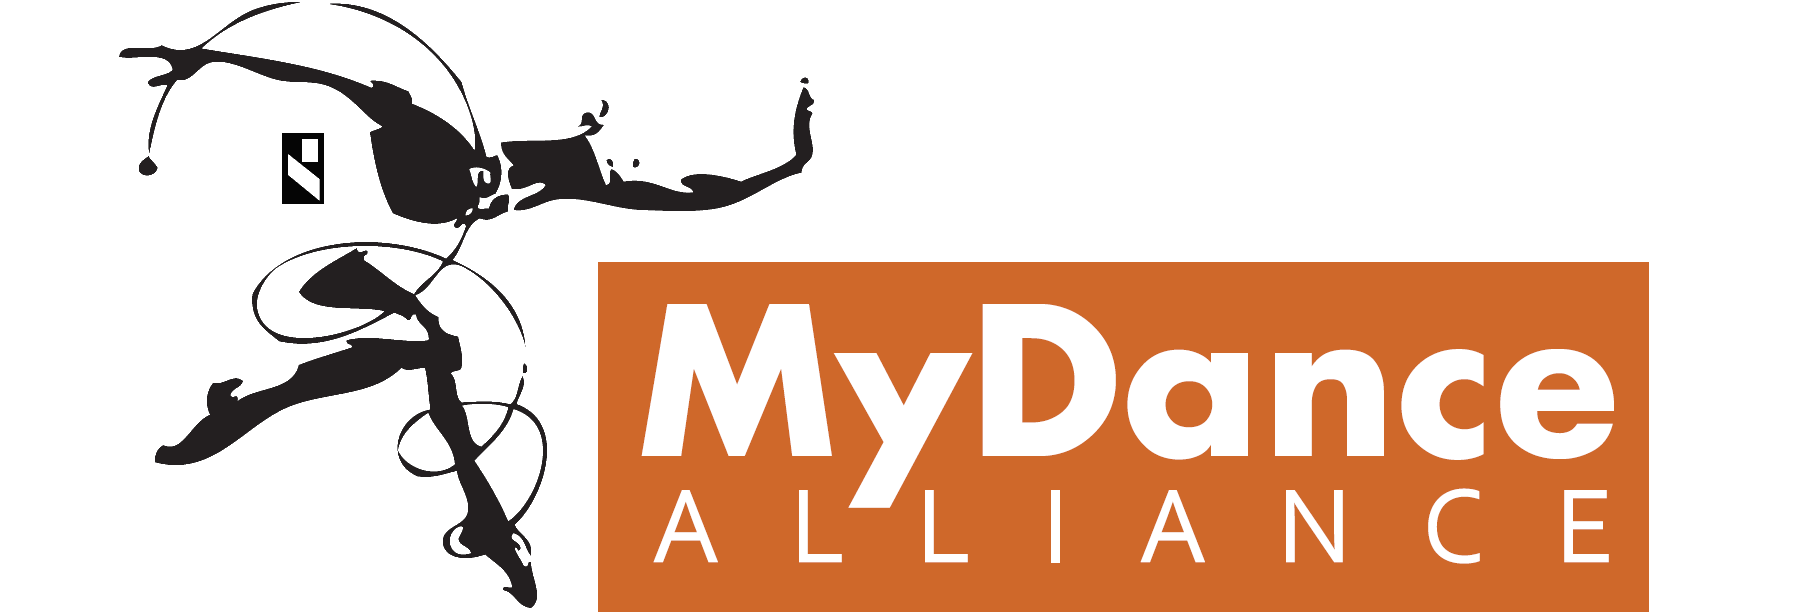 MyDance Alliance